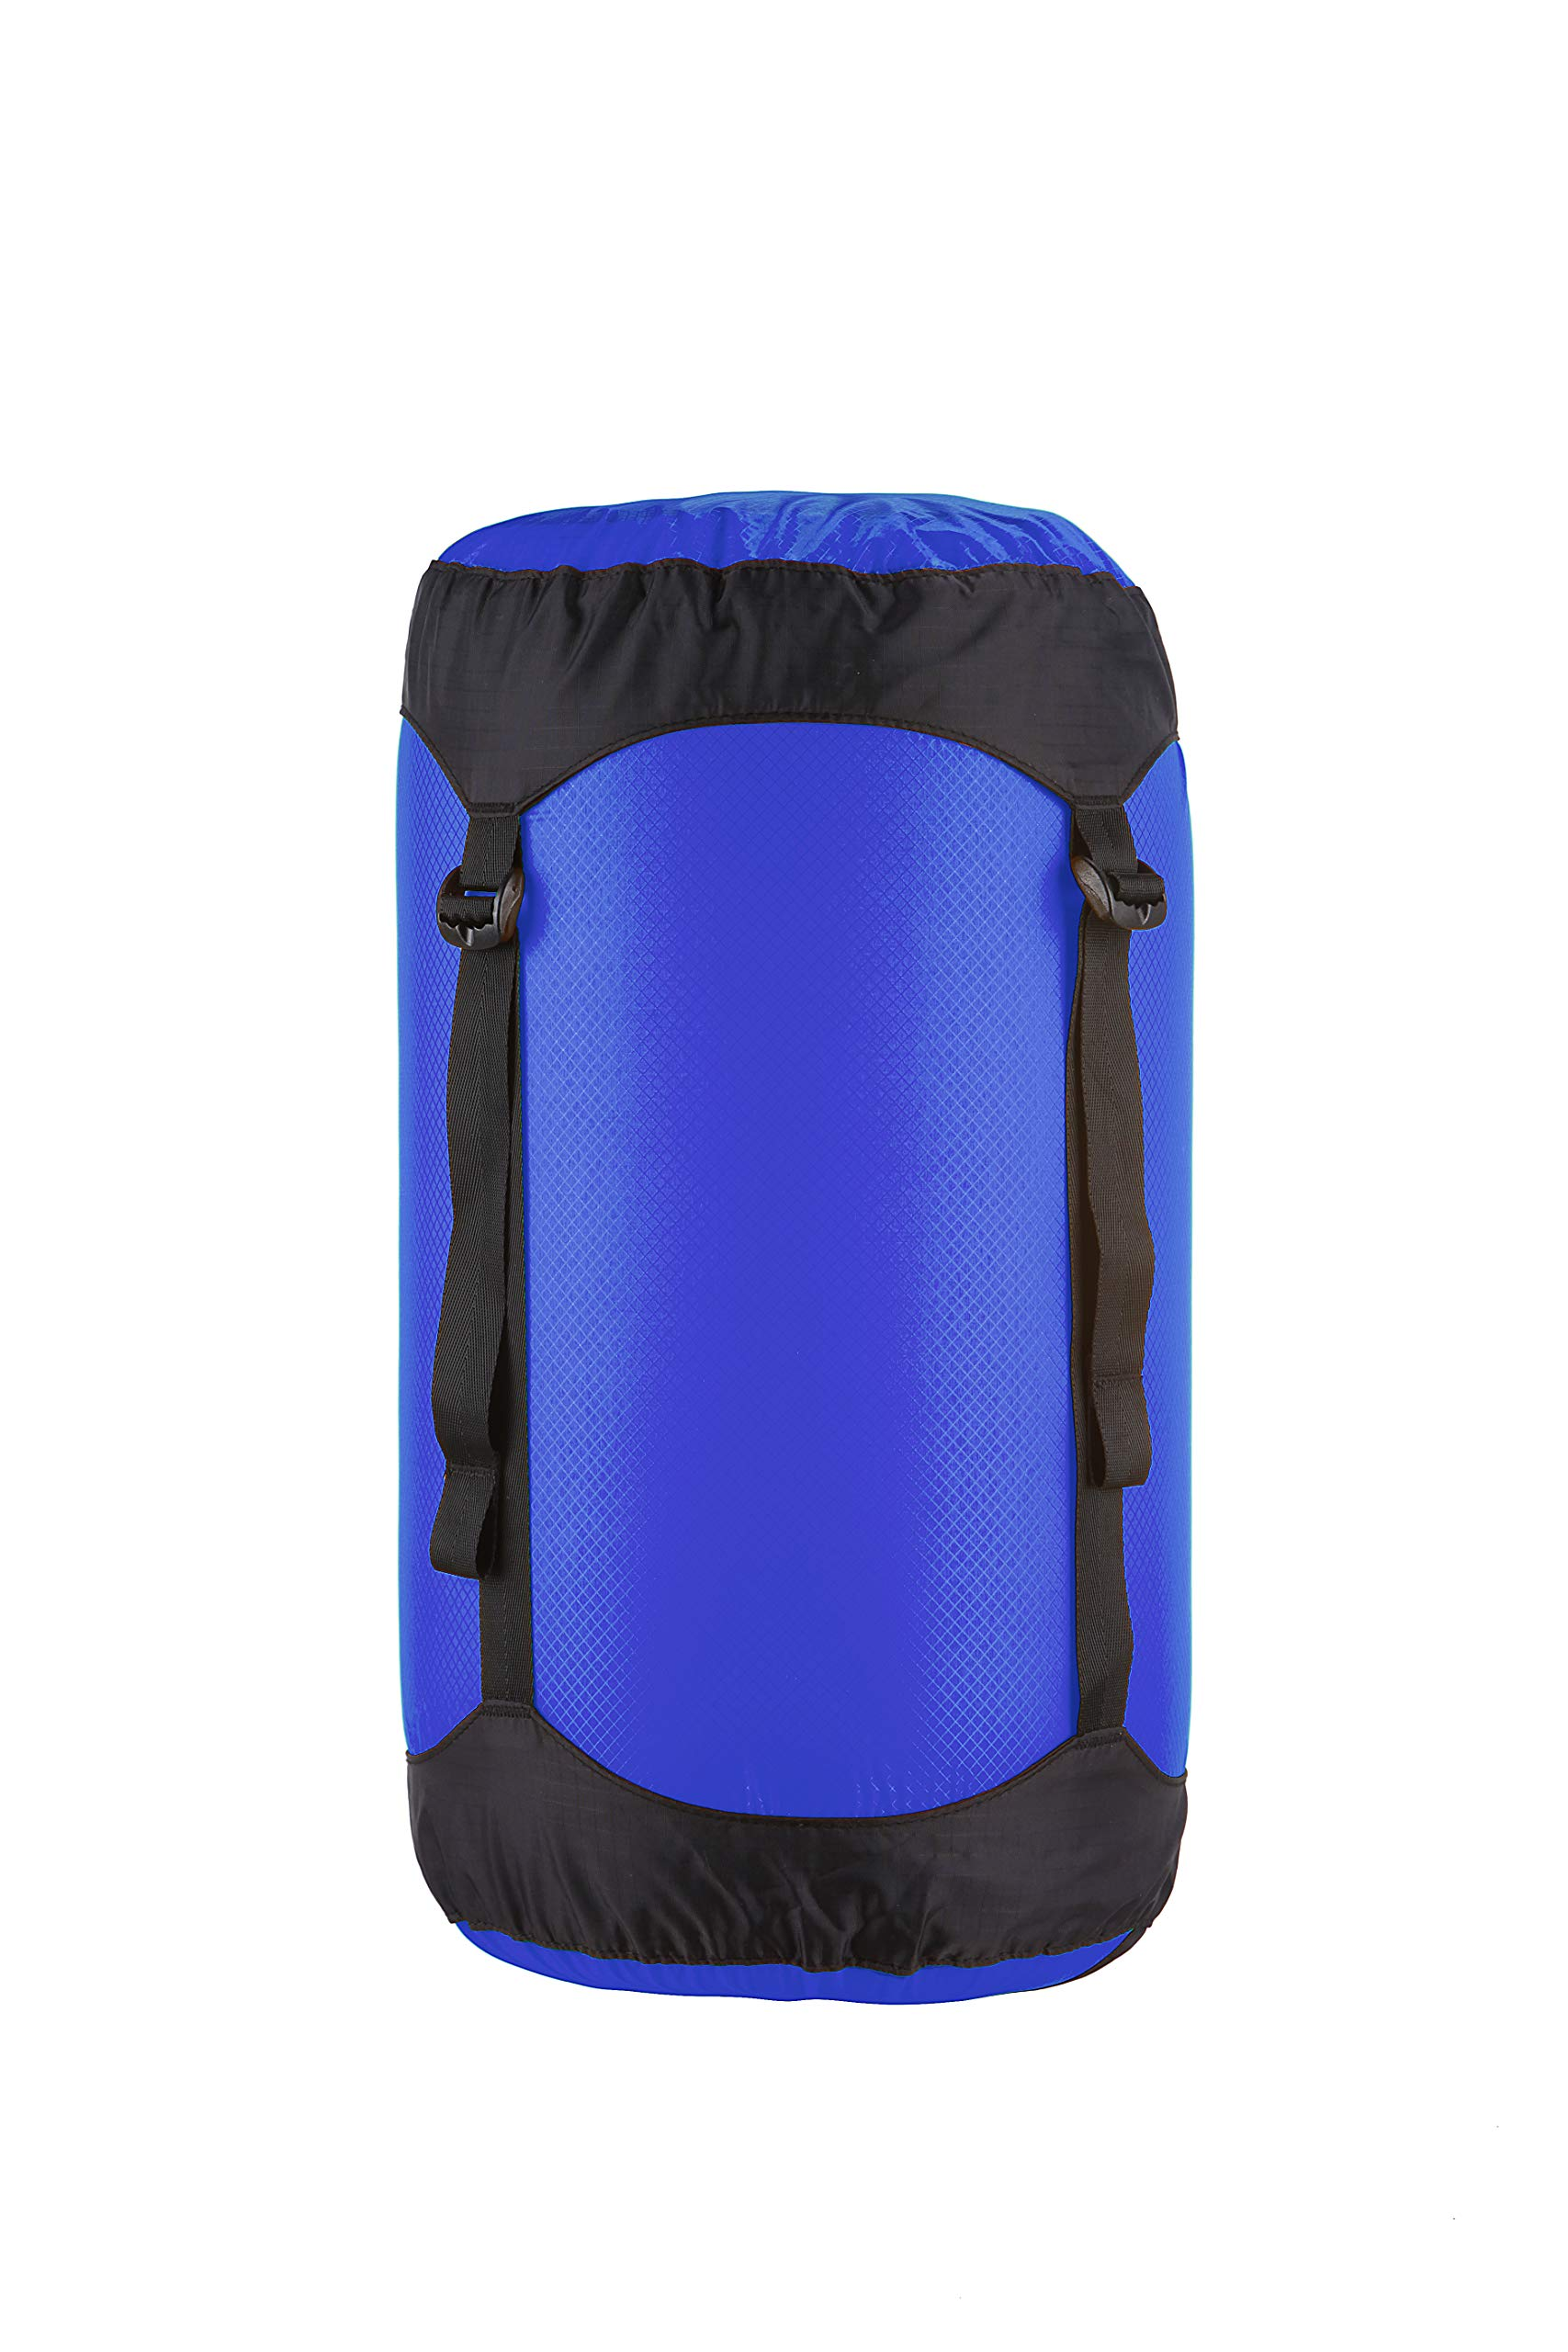 Sea to Summit Ultra-SIL Compression Sack, Royal Blue, 14 Liter by Sea to Summit